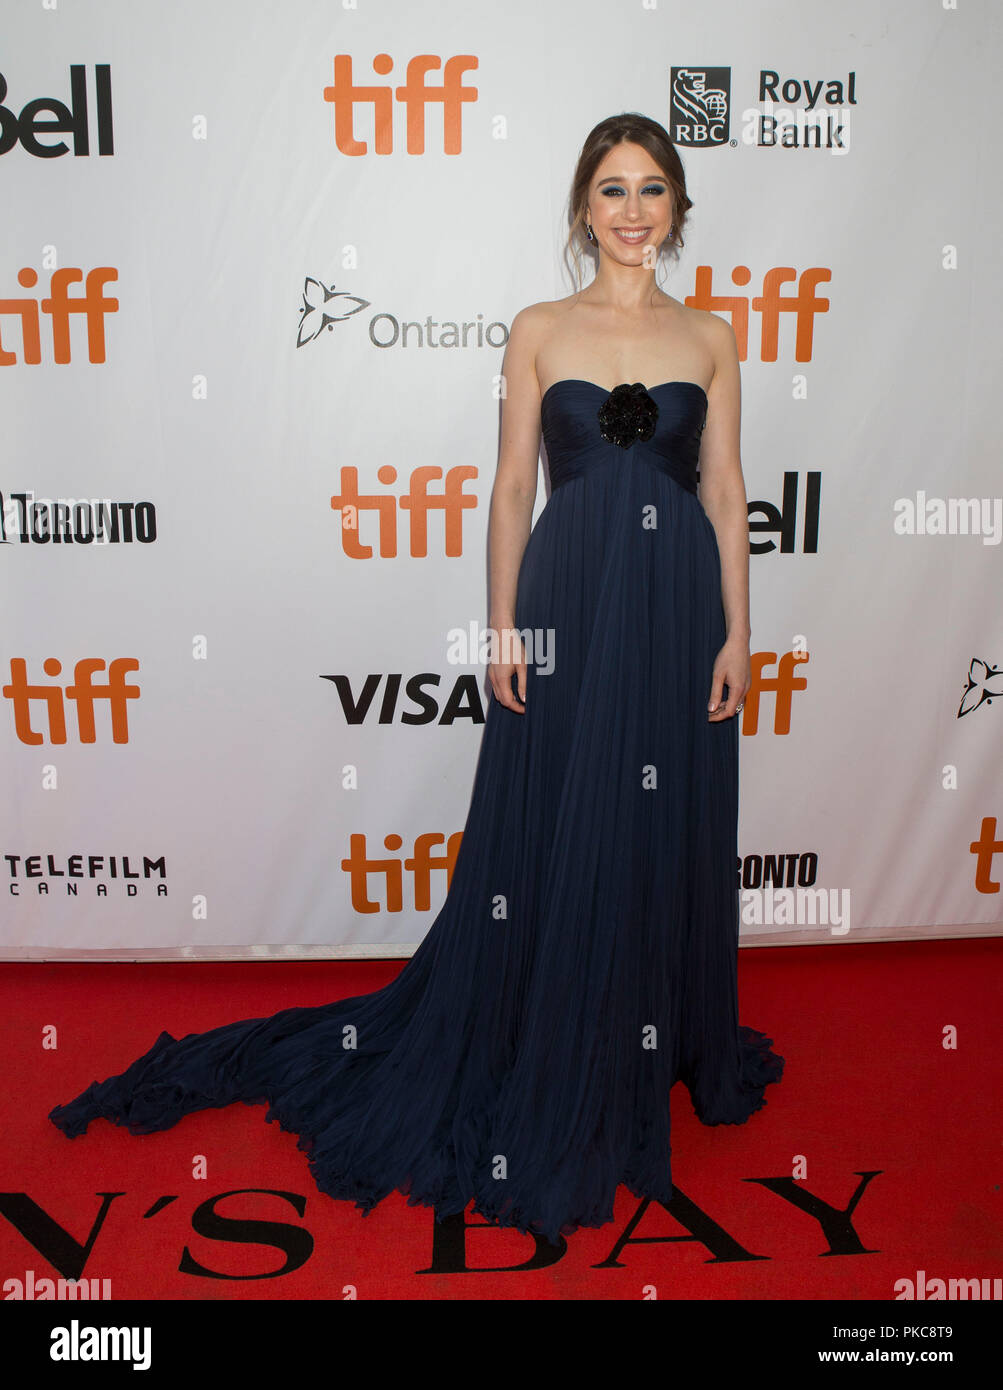 Toronto, Canada. 12th Sep, 2018. Actress Taissa Farmiga poses for photos before the international premiere of the film 'What They Had' at Roy Thomson Hall during the 2018 Toronto International Film Festival in Toronto, Canada, Sept. 12, 2018. Credit: Zou Zheng/Xinhua/Alamy Live News - Stock Image